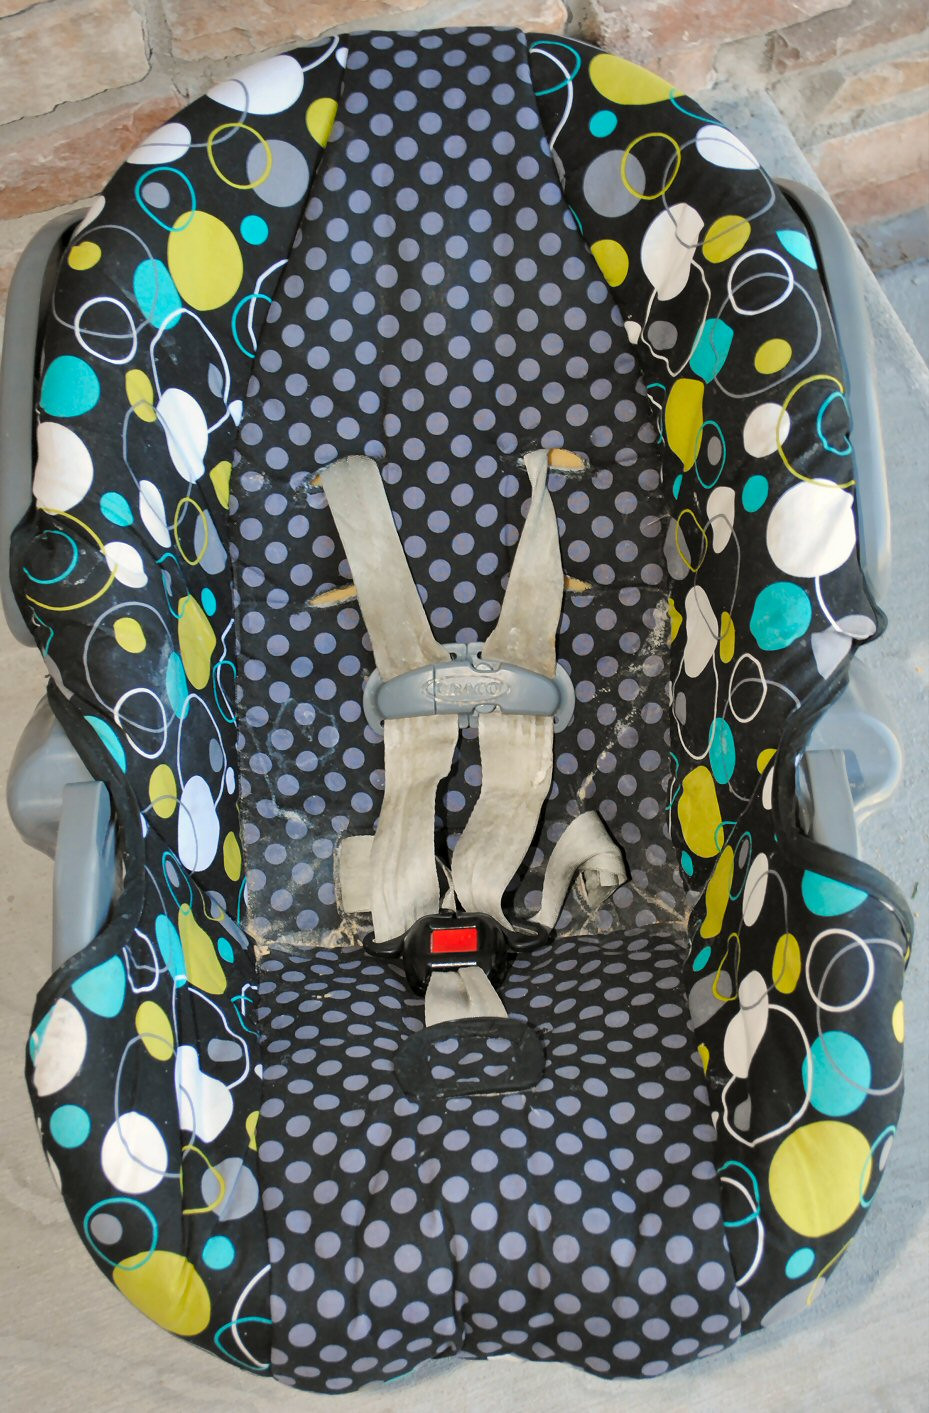 Infant Toddler Car Seat Cover Tutorial How to Cover a